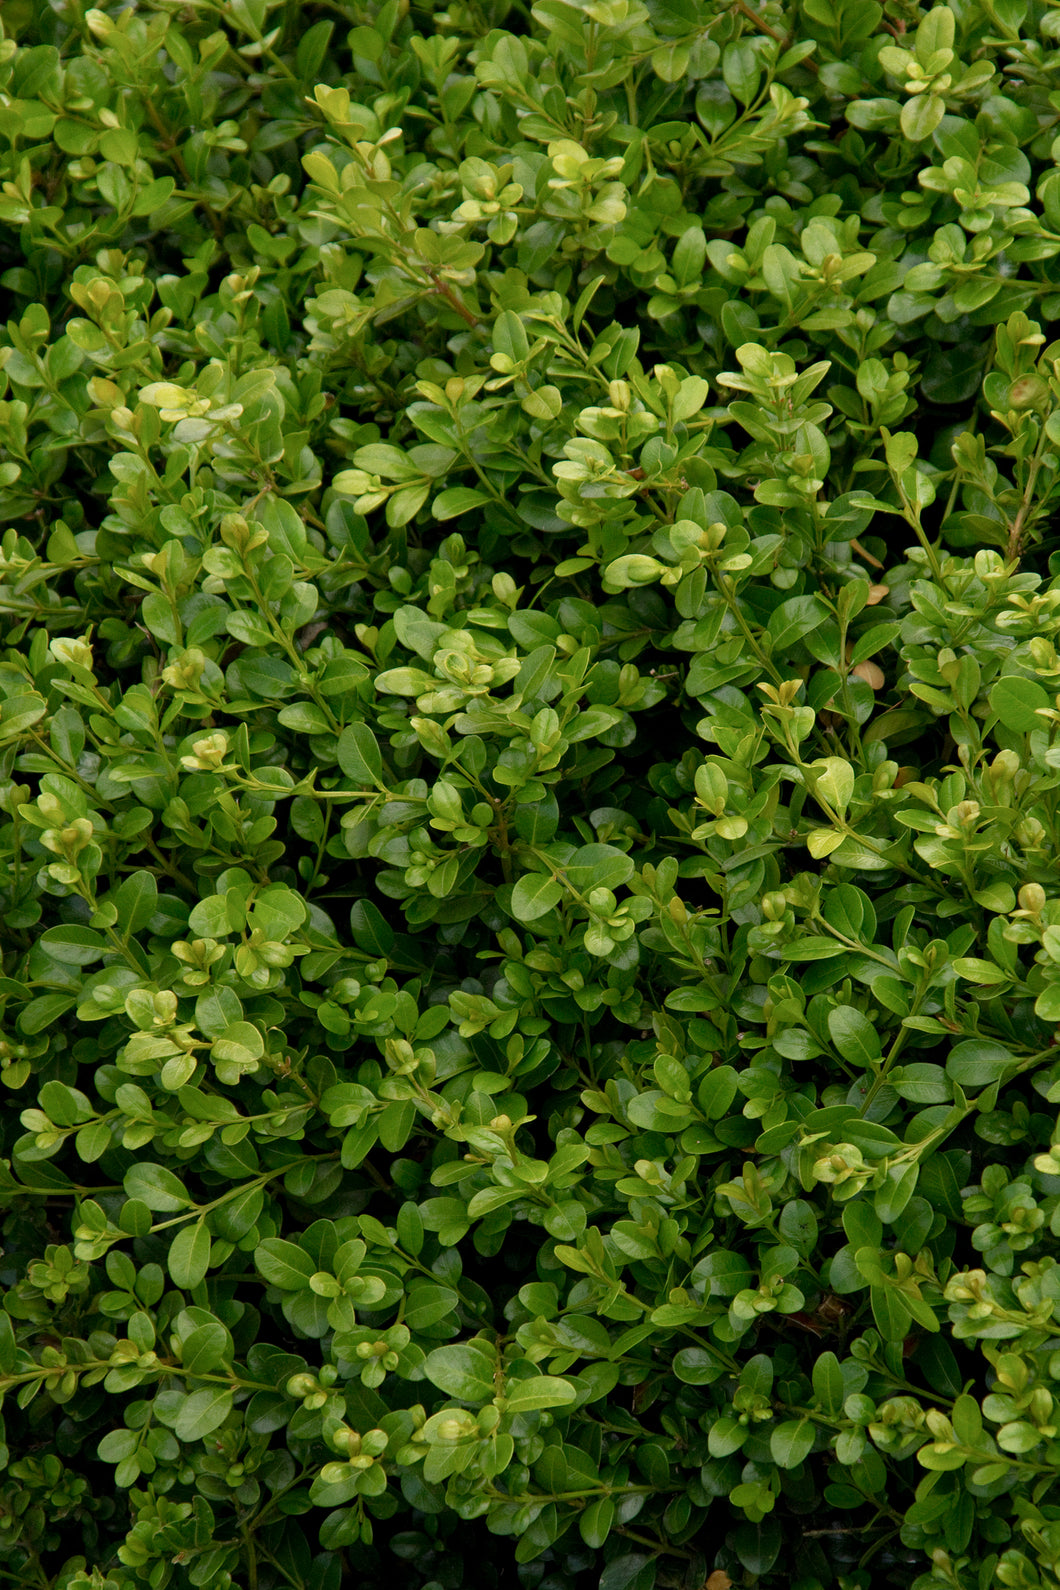 Buxus microphylla 'Winter Beauty' / Winter Beauty Boxwood